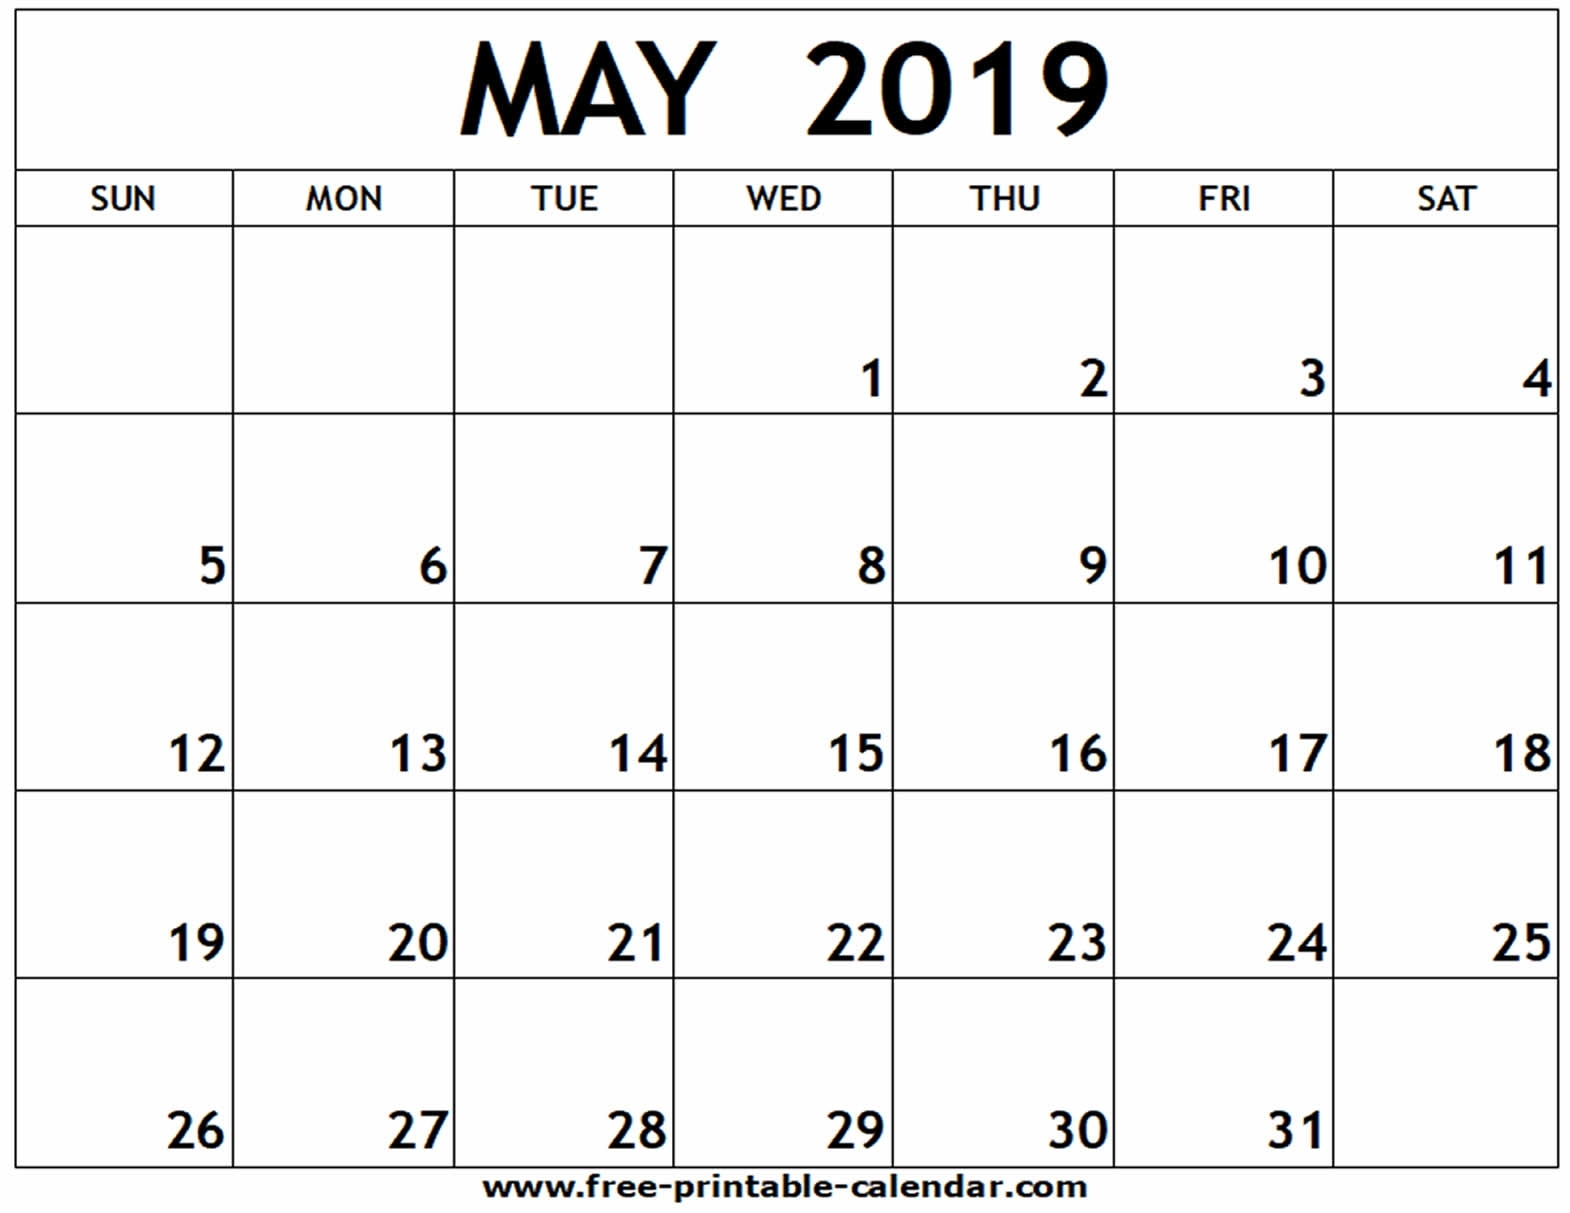 Free Printable Calandars Calendars 2019 Portrait 2018 June